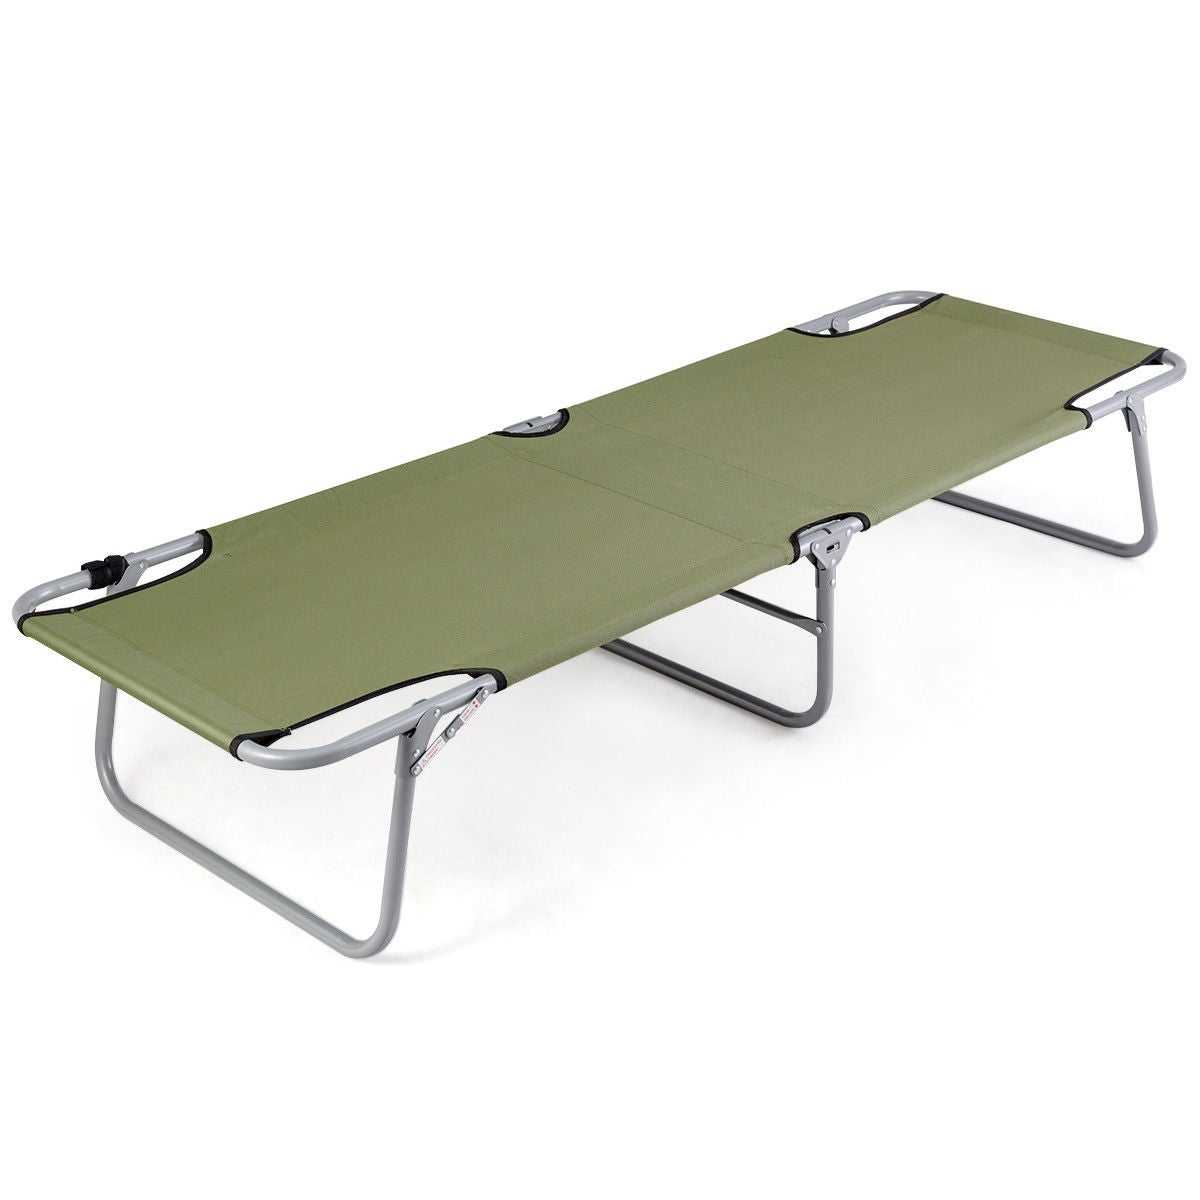 Amazon Hot Goedkope Outdoor Draagbare Camping <span class=keywords><strong>Bed</strong></span> Militaire Leger Camping Cot Ramp Noodhulp Vouwen <span class=keywords><strong>Bed</strong></span>